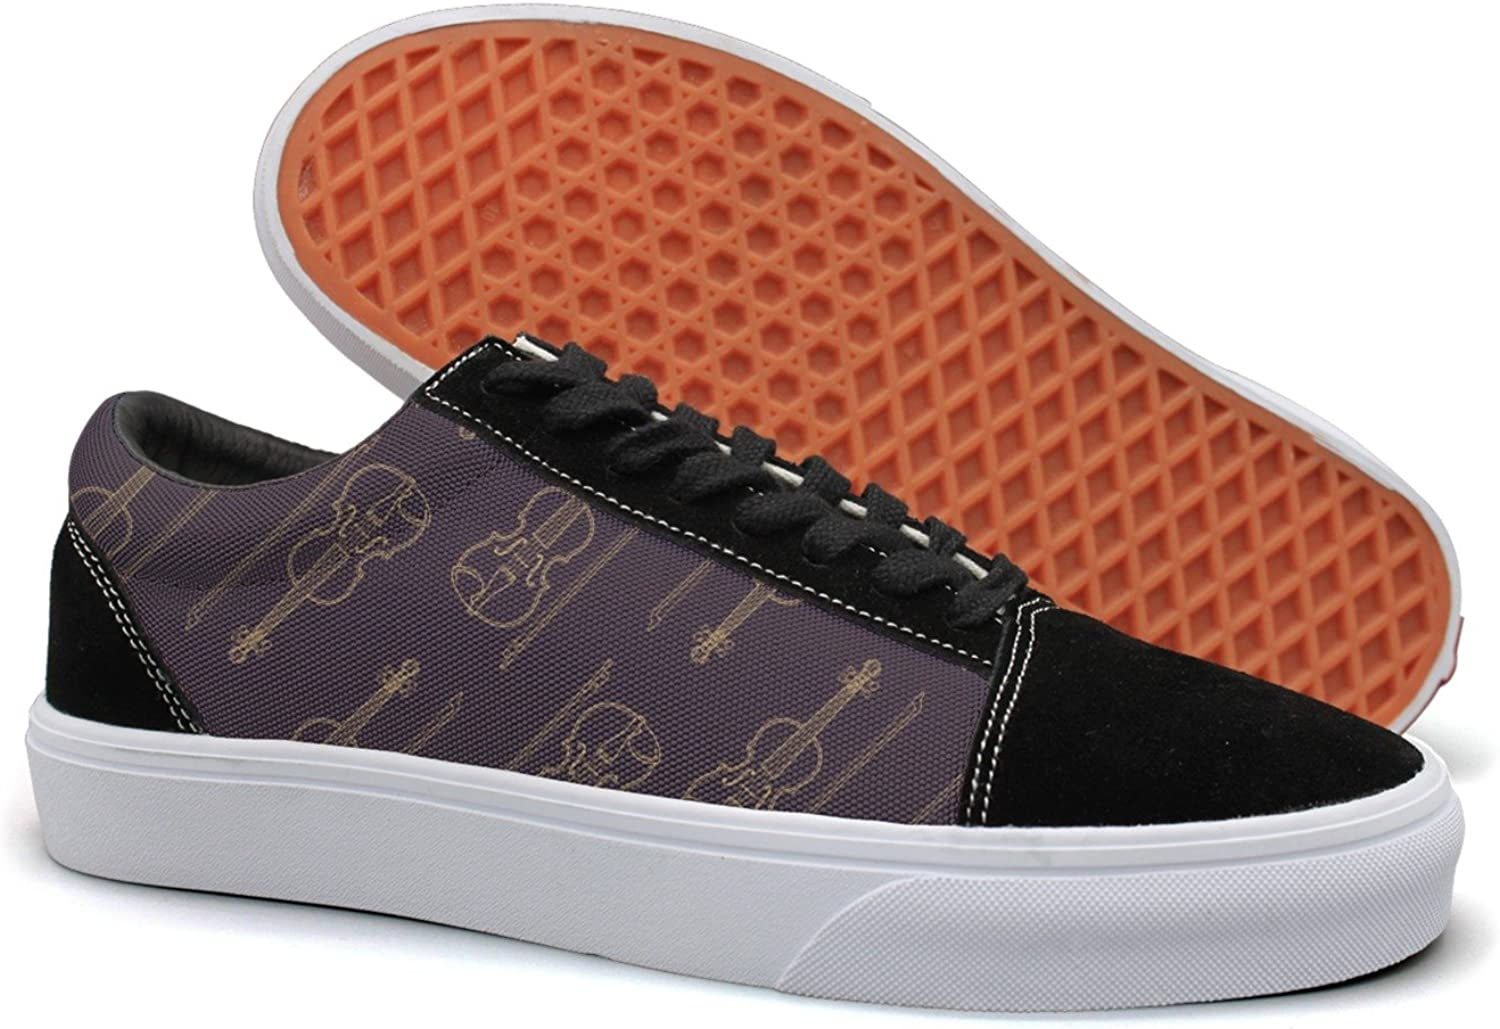 Feenfling Classical Music Violin Womens Plain Suede Canvas Boat shoes Low Top Sneakers shoes